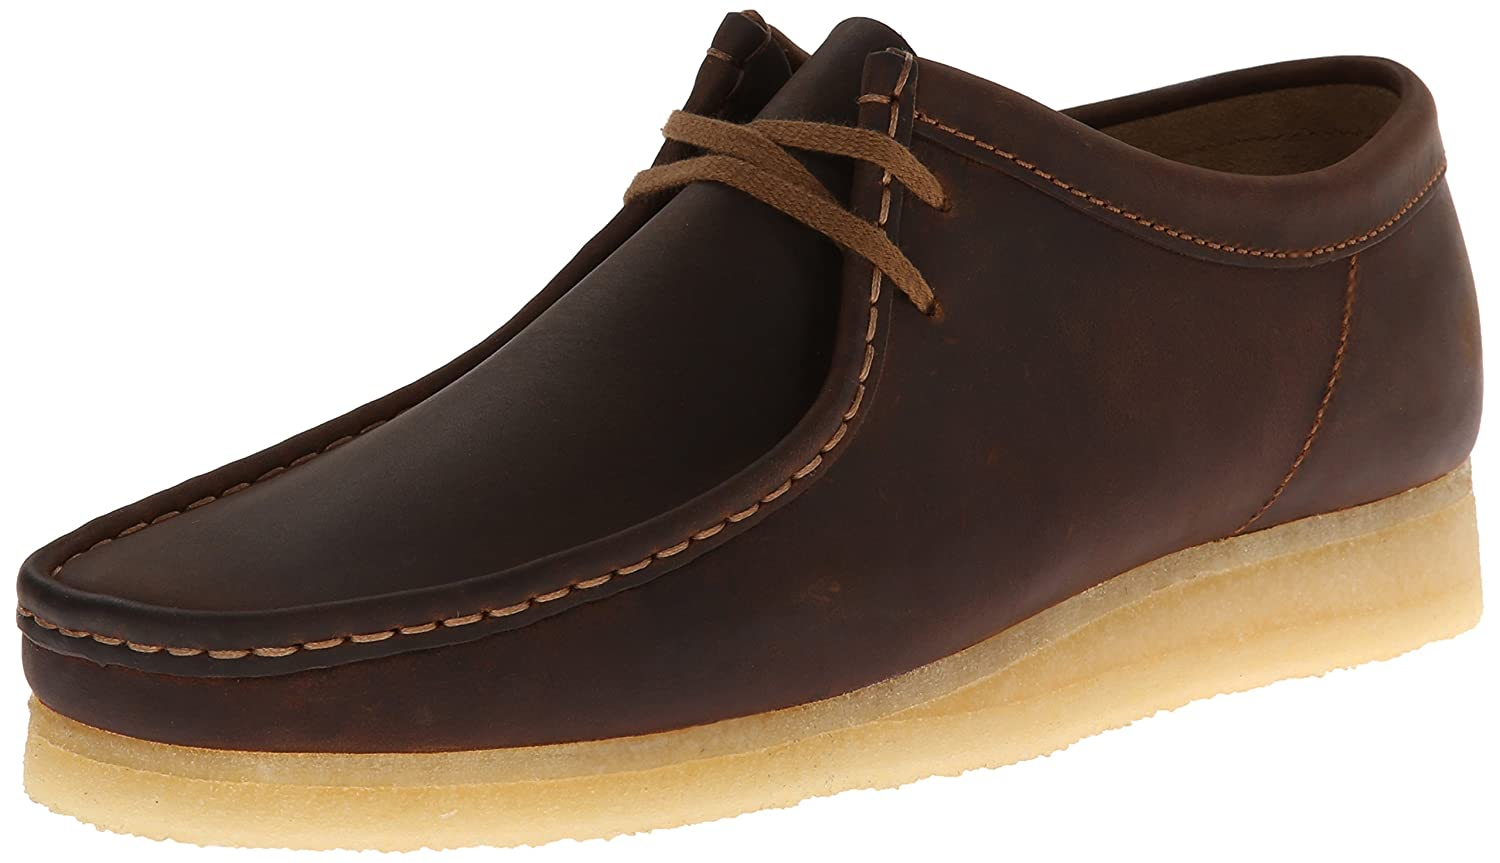 CLARKS Men's Wallabee Shoe B00IJLTXU0 8 D(M) US|Beeswax Leather